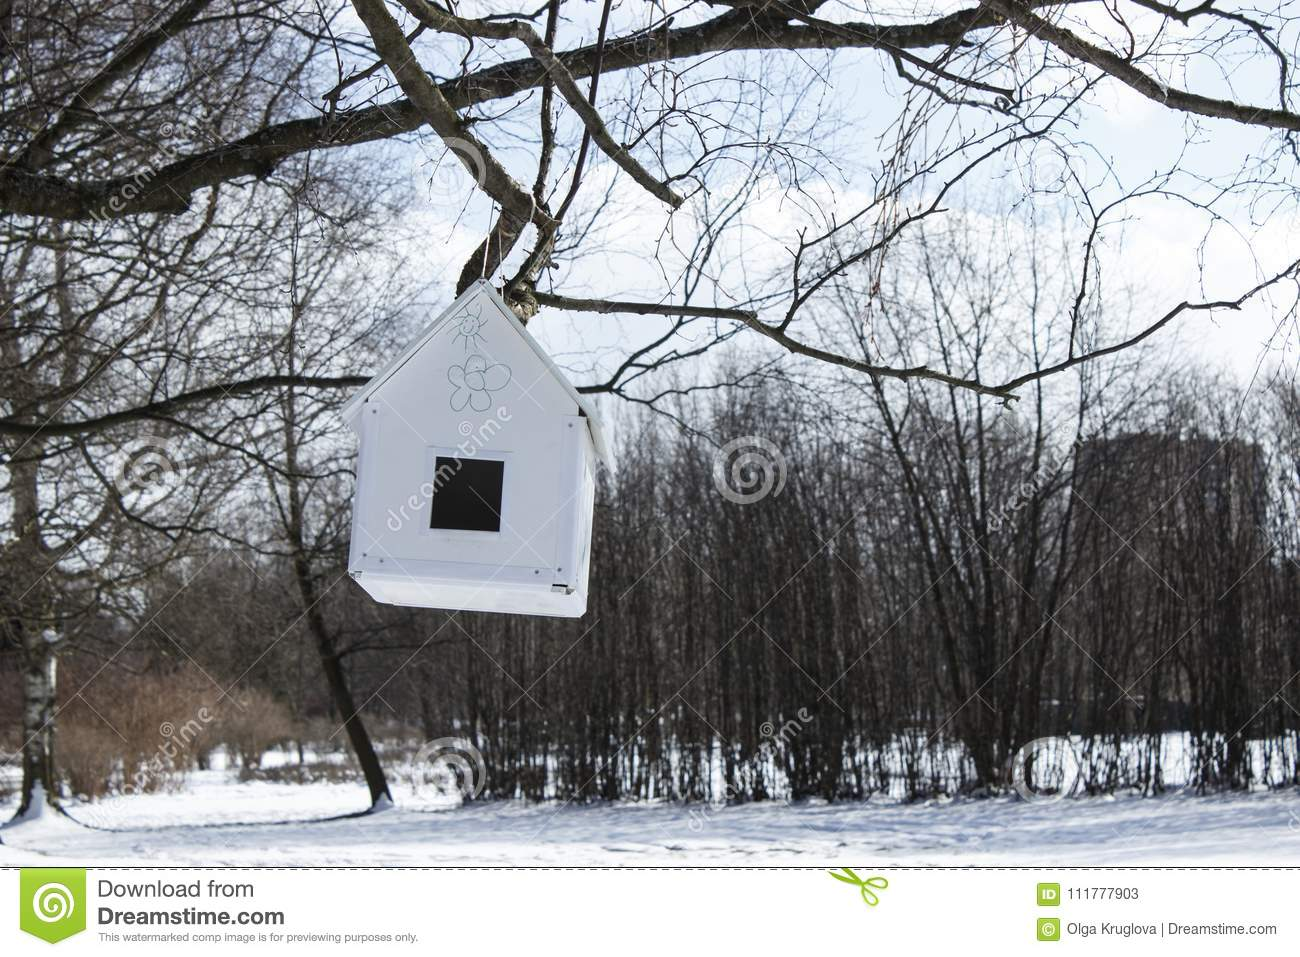 House-feeder hanging from a tre